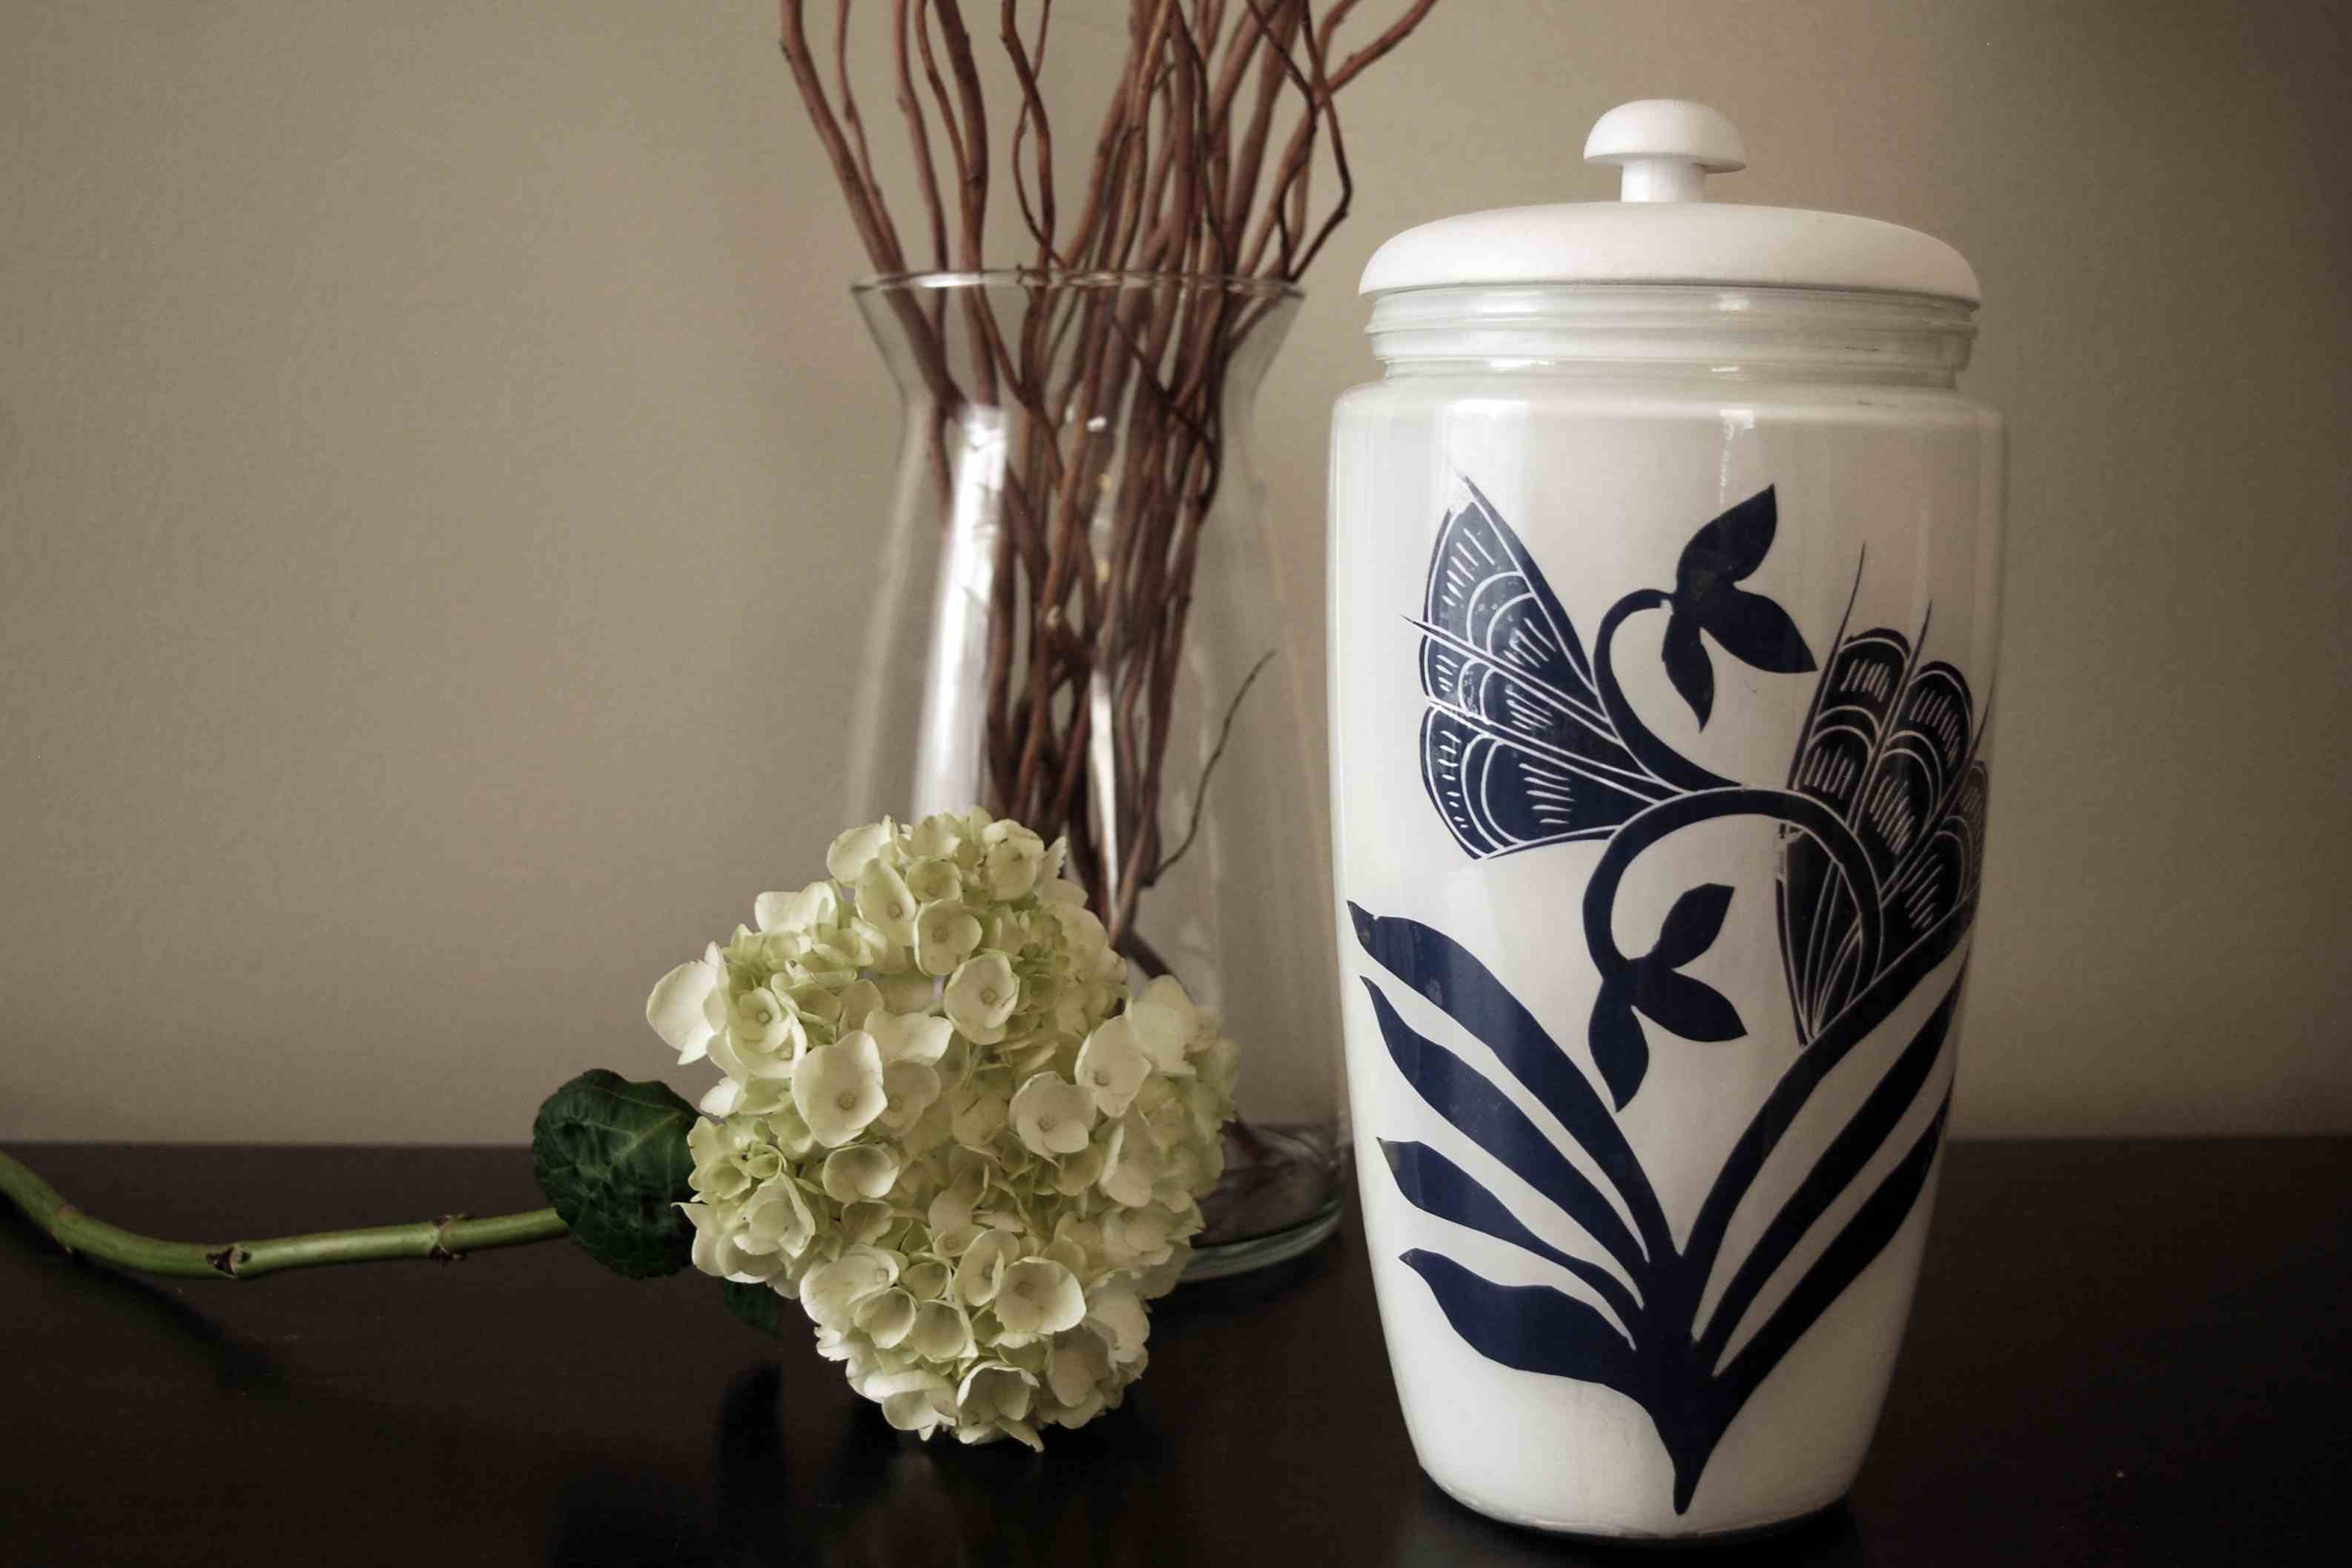 chinese vase table lamps of awesome ceramic vase with lid otsego go info in ceramic vase with lid best of chinese ginger jar table lamps new vases chinese vase with lid of ceramic vase with lid